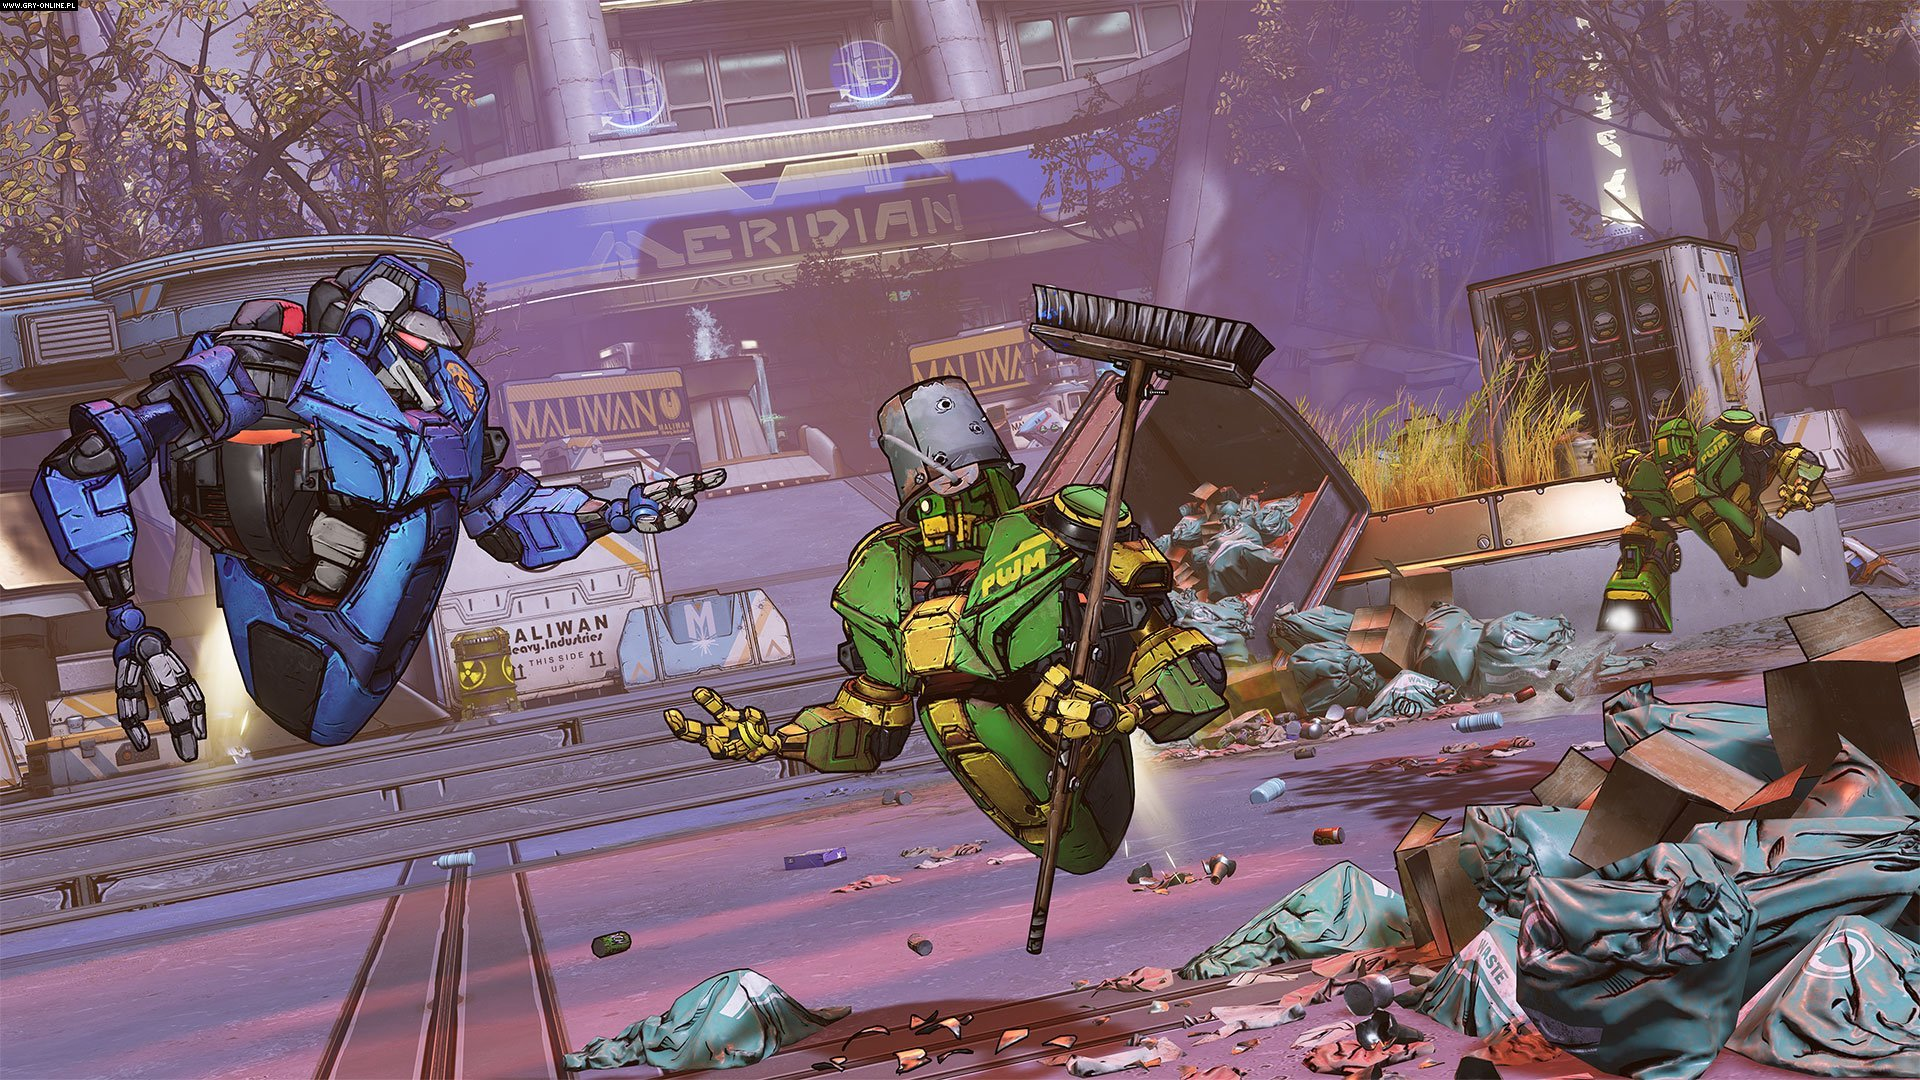 Borderlands 3 PC, PS4, XONE Games Image 11/45, Gearbox Software, 2K Games